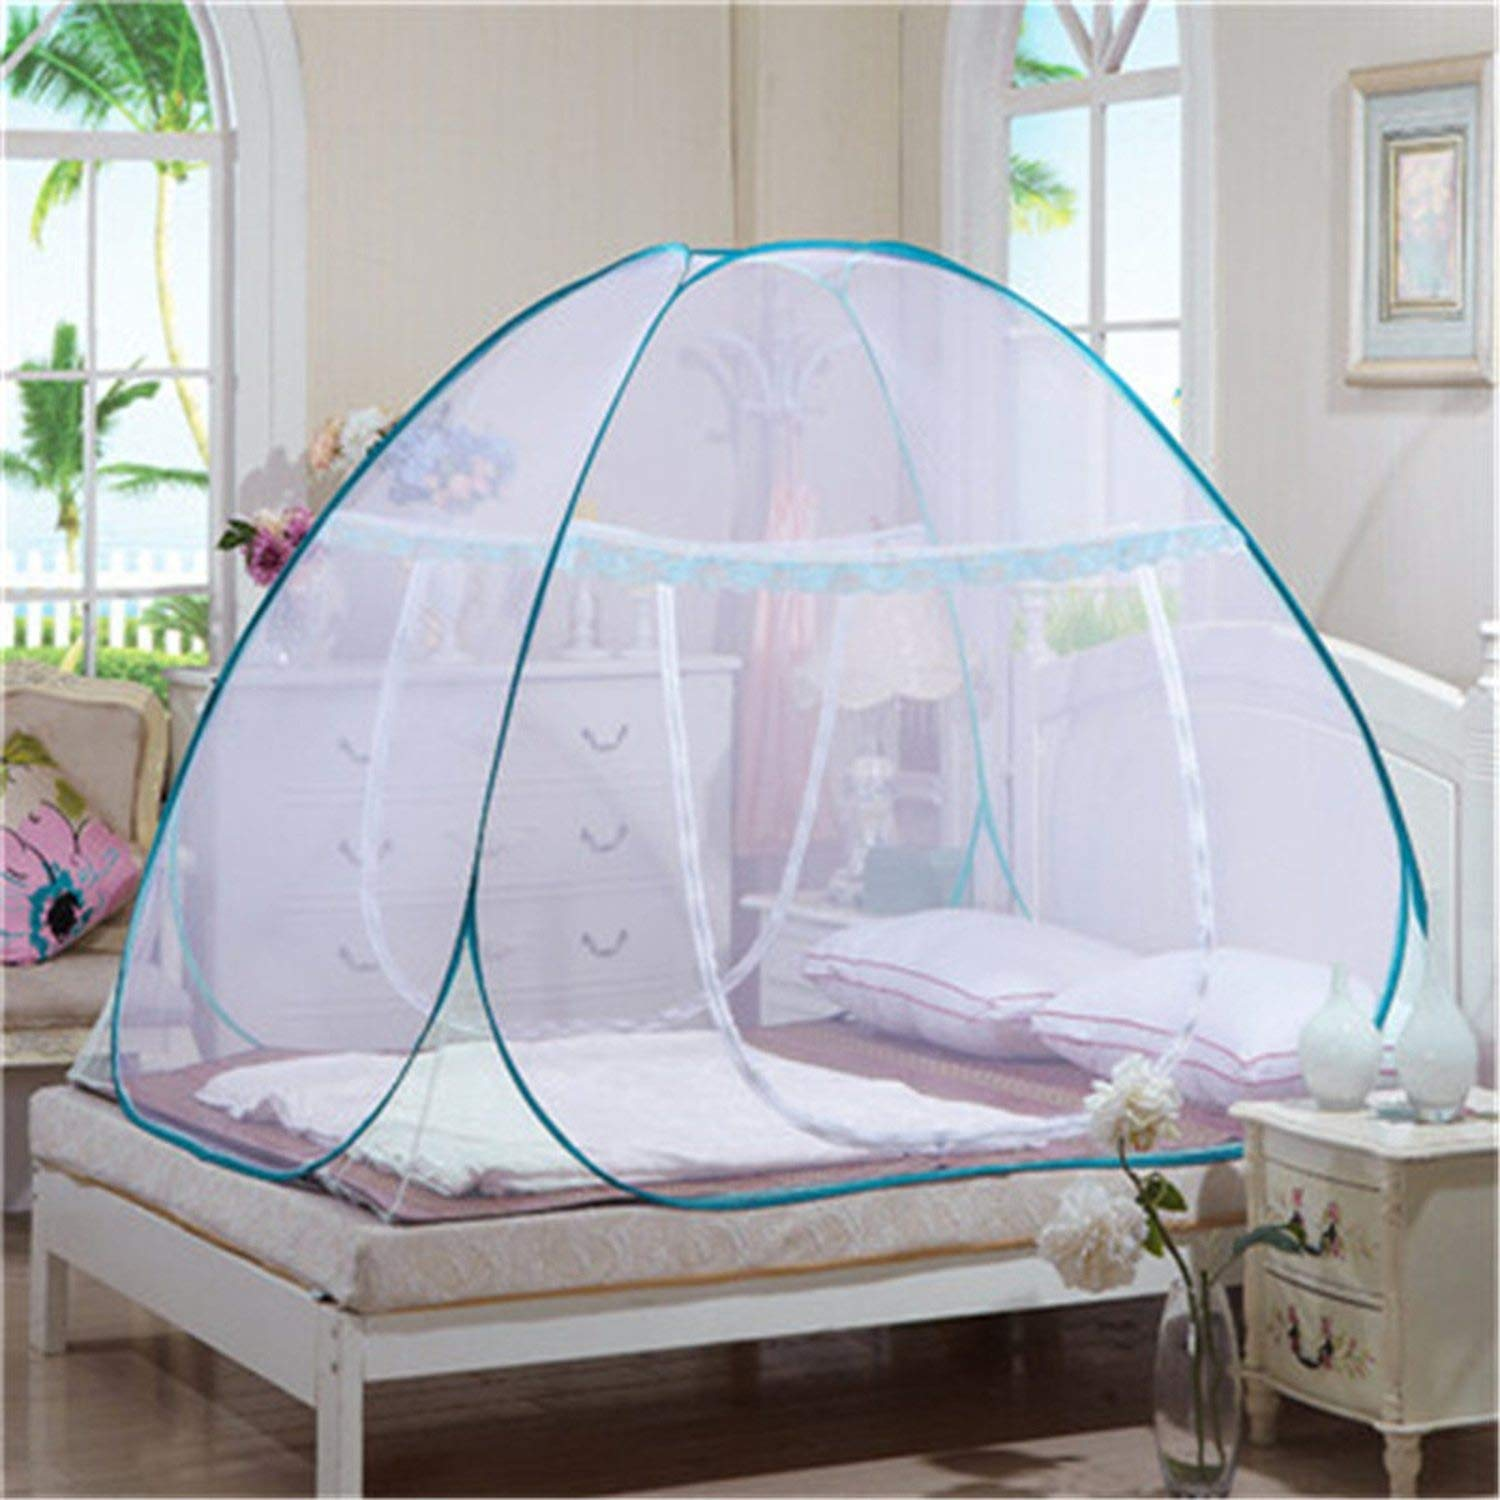 Mosquito Net for Bed Pink Blue Purple Student Bunk Bed Net Mesh Adult Double Bed Netting Tent Mosquito,D by Try My Best Mosquito Net (Image #4)